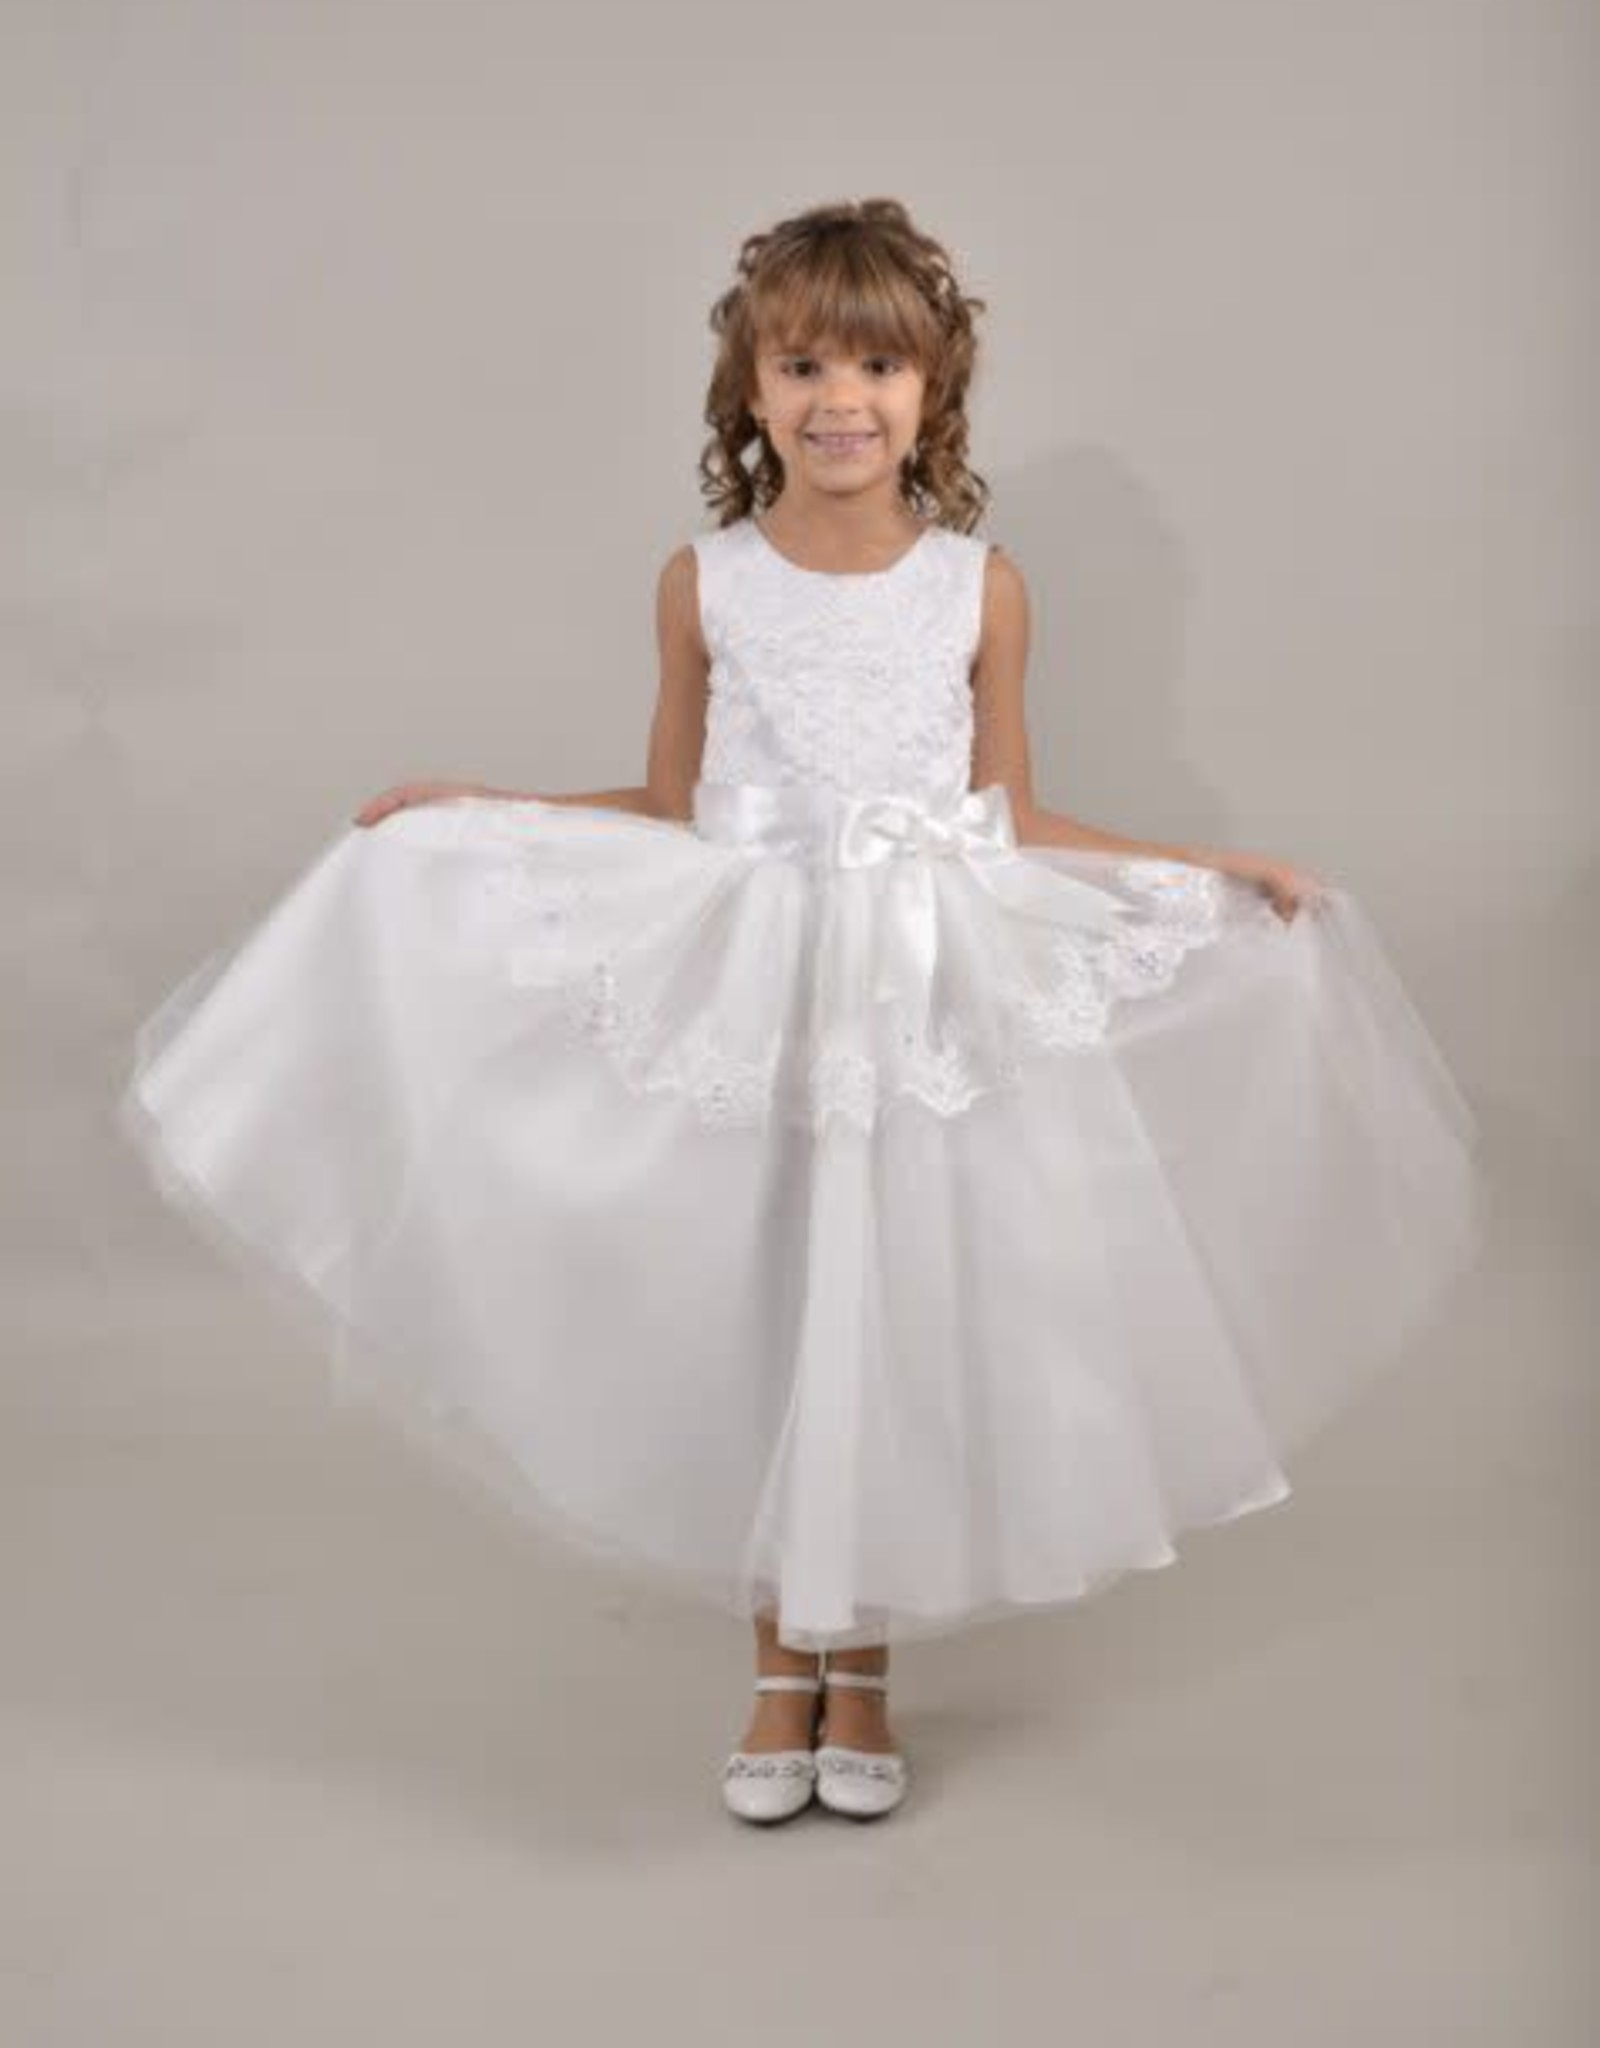 Sweetie Pie Dress 444